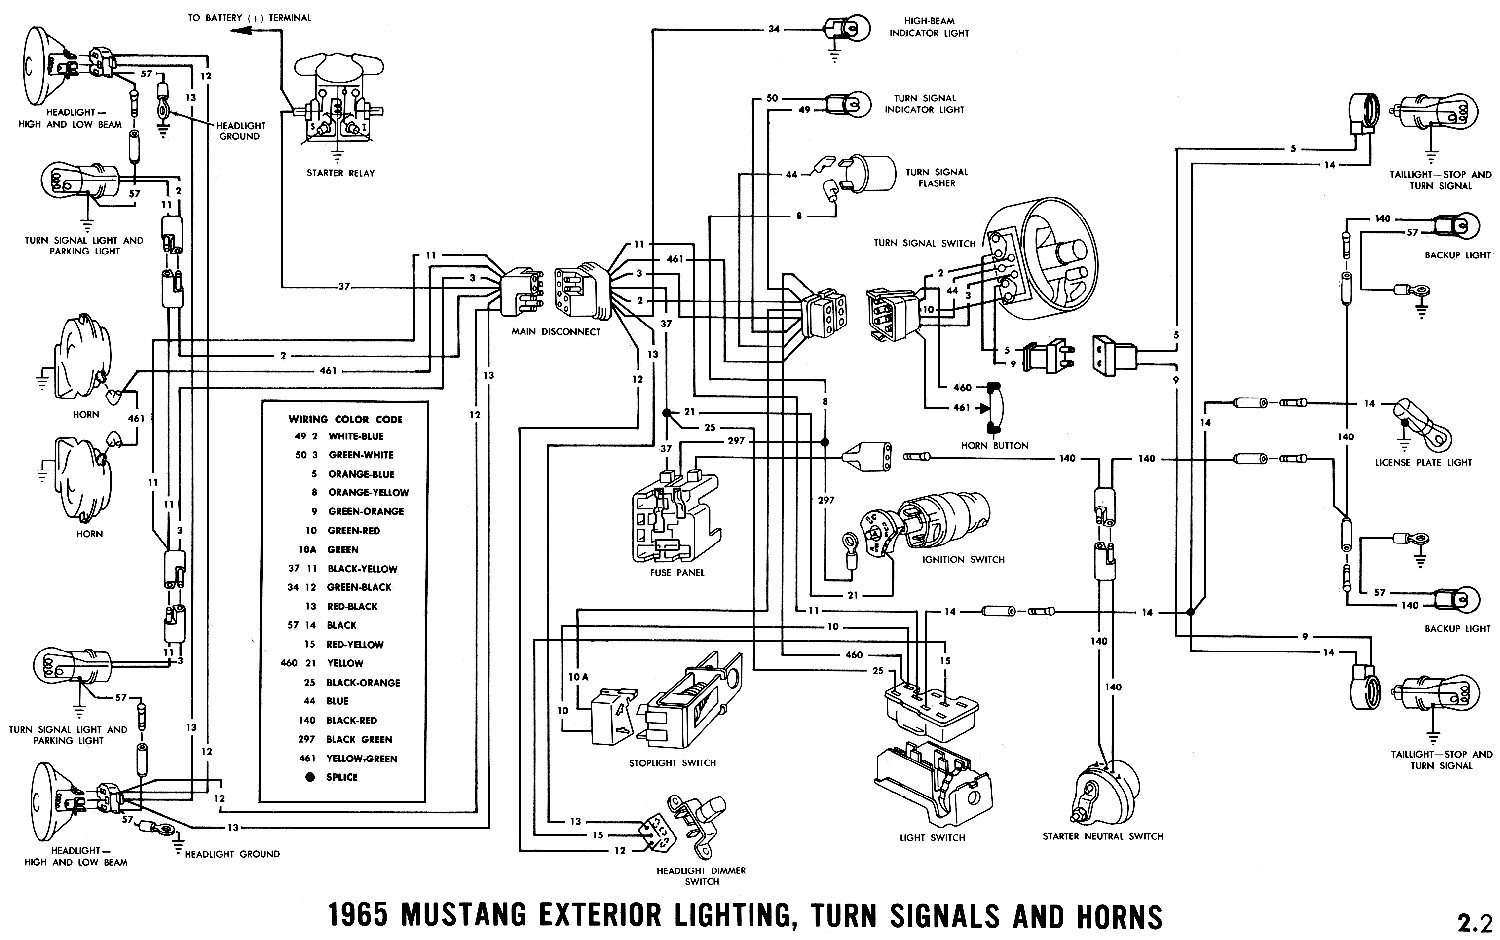 1965 Fairlane Wiring Harness Manual E Books Ford F100 Data Diagram Today66